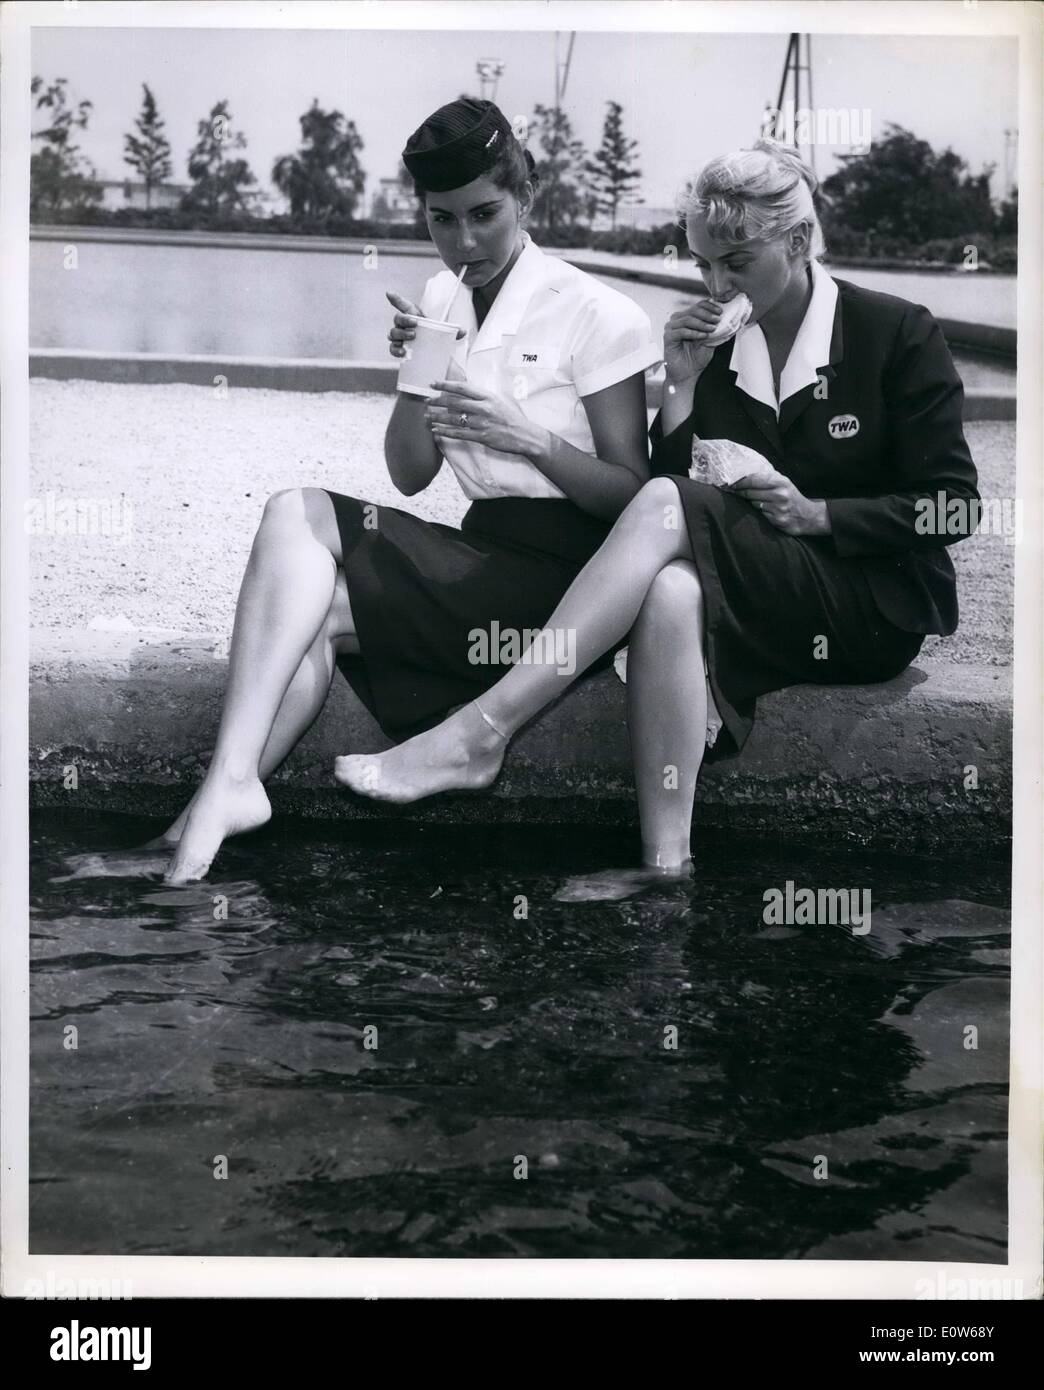 Aug. 08, 1961 - While the eastern seaboard sweltered beneath the August heat wave TWA ground hostesses Helen Cooper (left) and Gail Clayton enjoyed outdoor air conditioning as they lunched in the cooling promimity of the beautiful airport fountains. - Stock Image